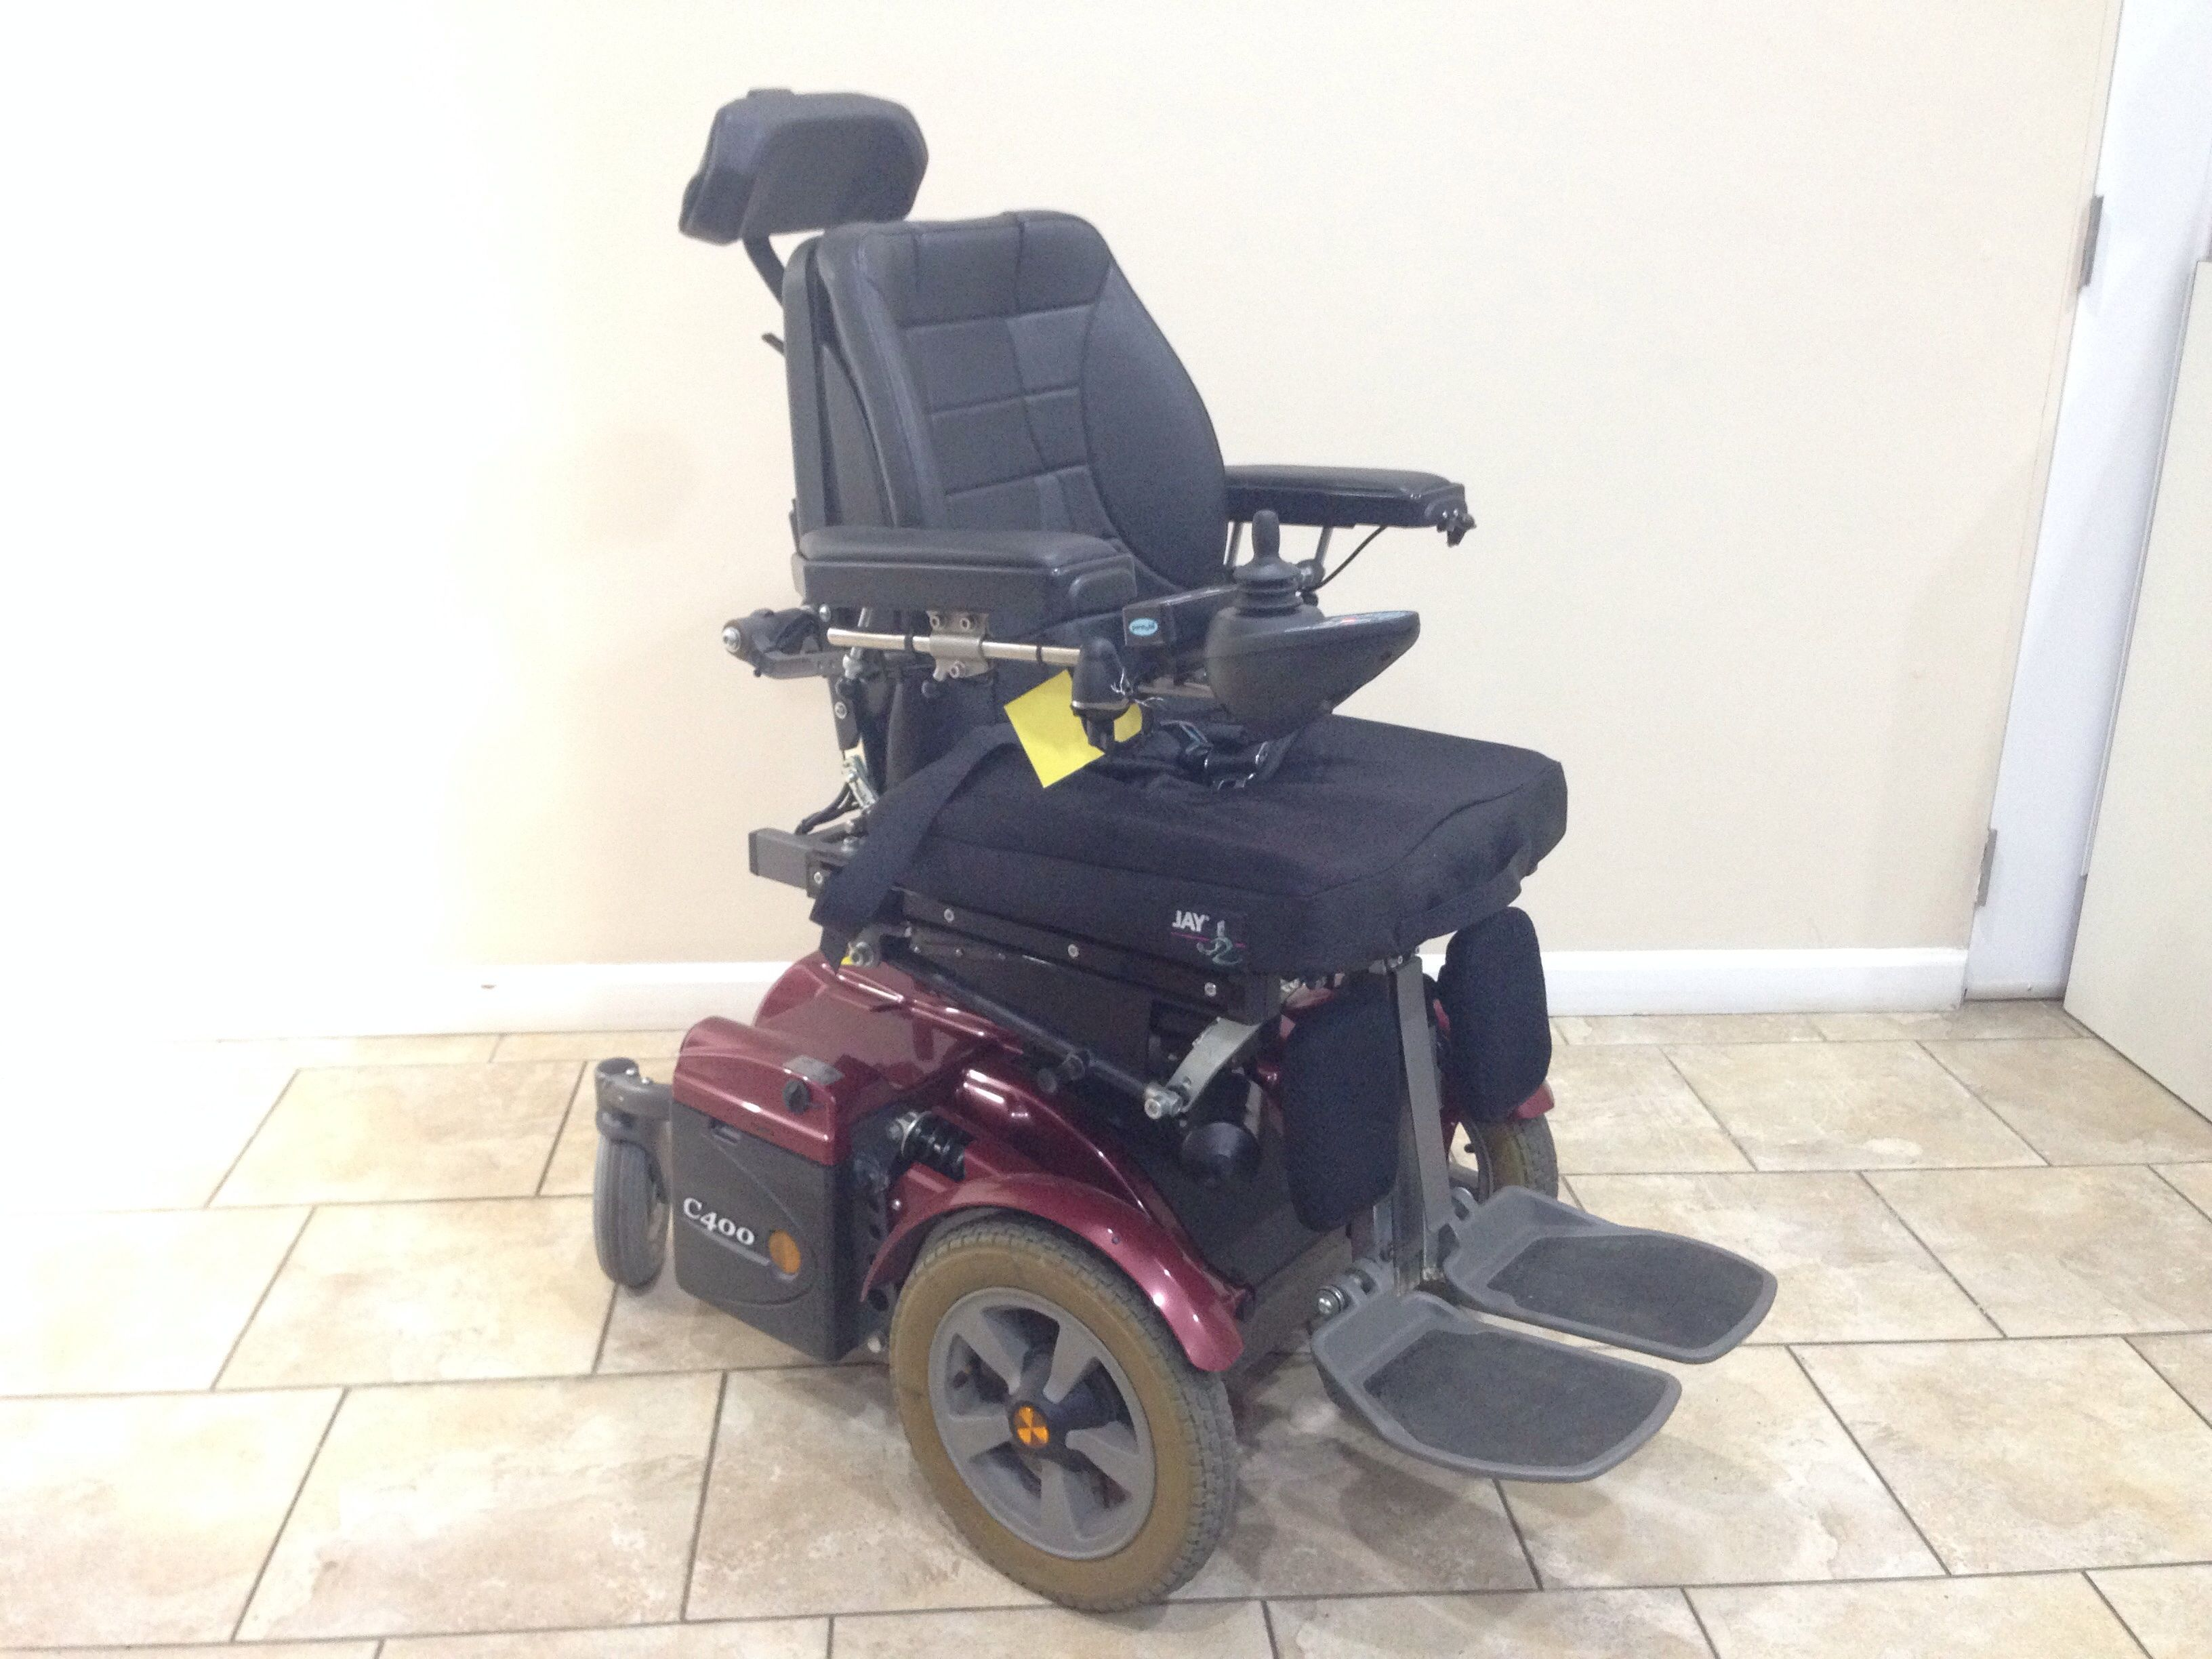 electrical wiring diagrams prmobil wheelchair c400